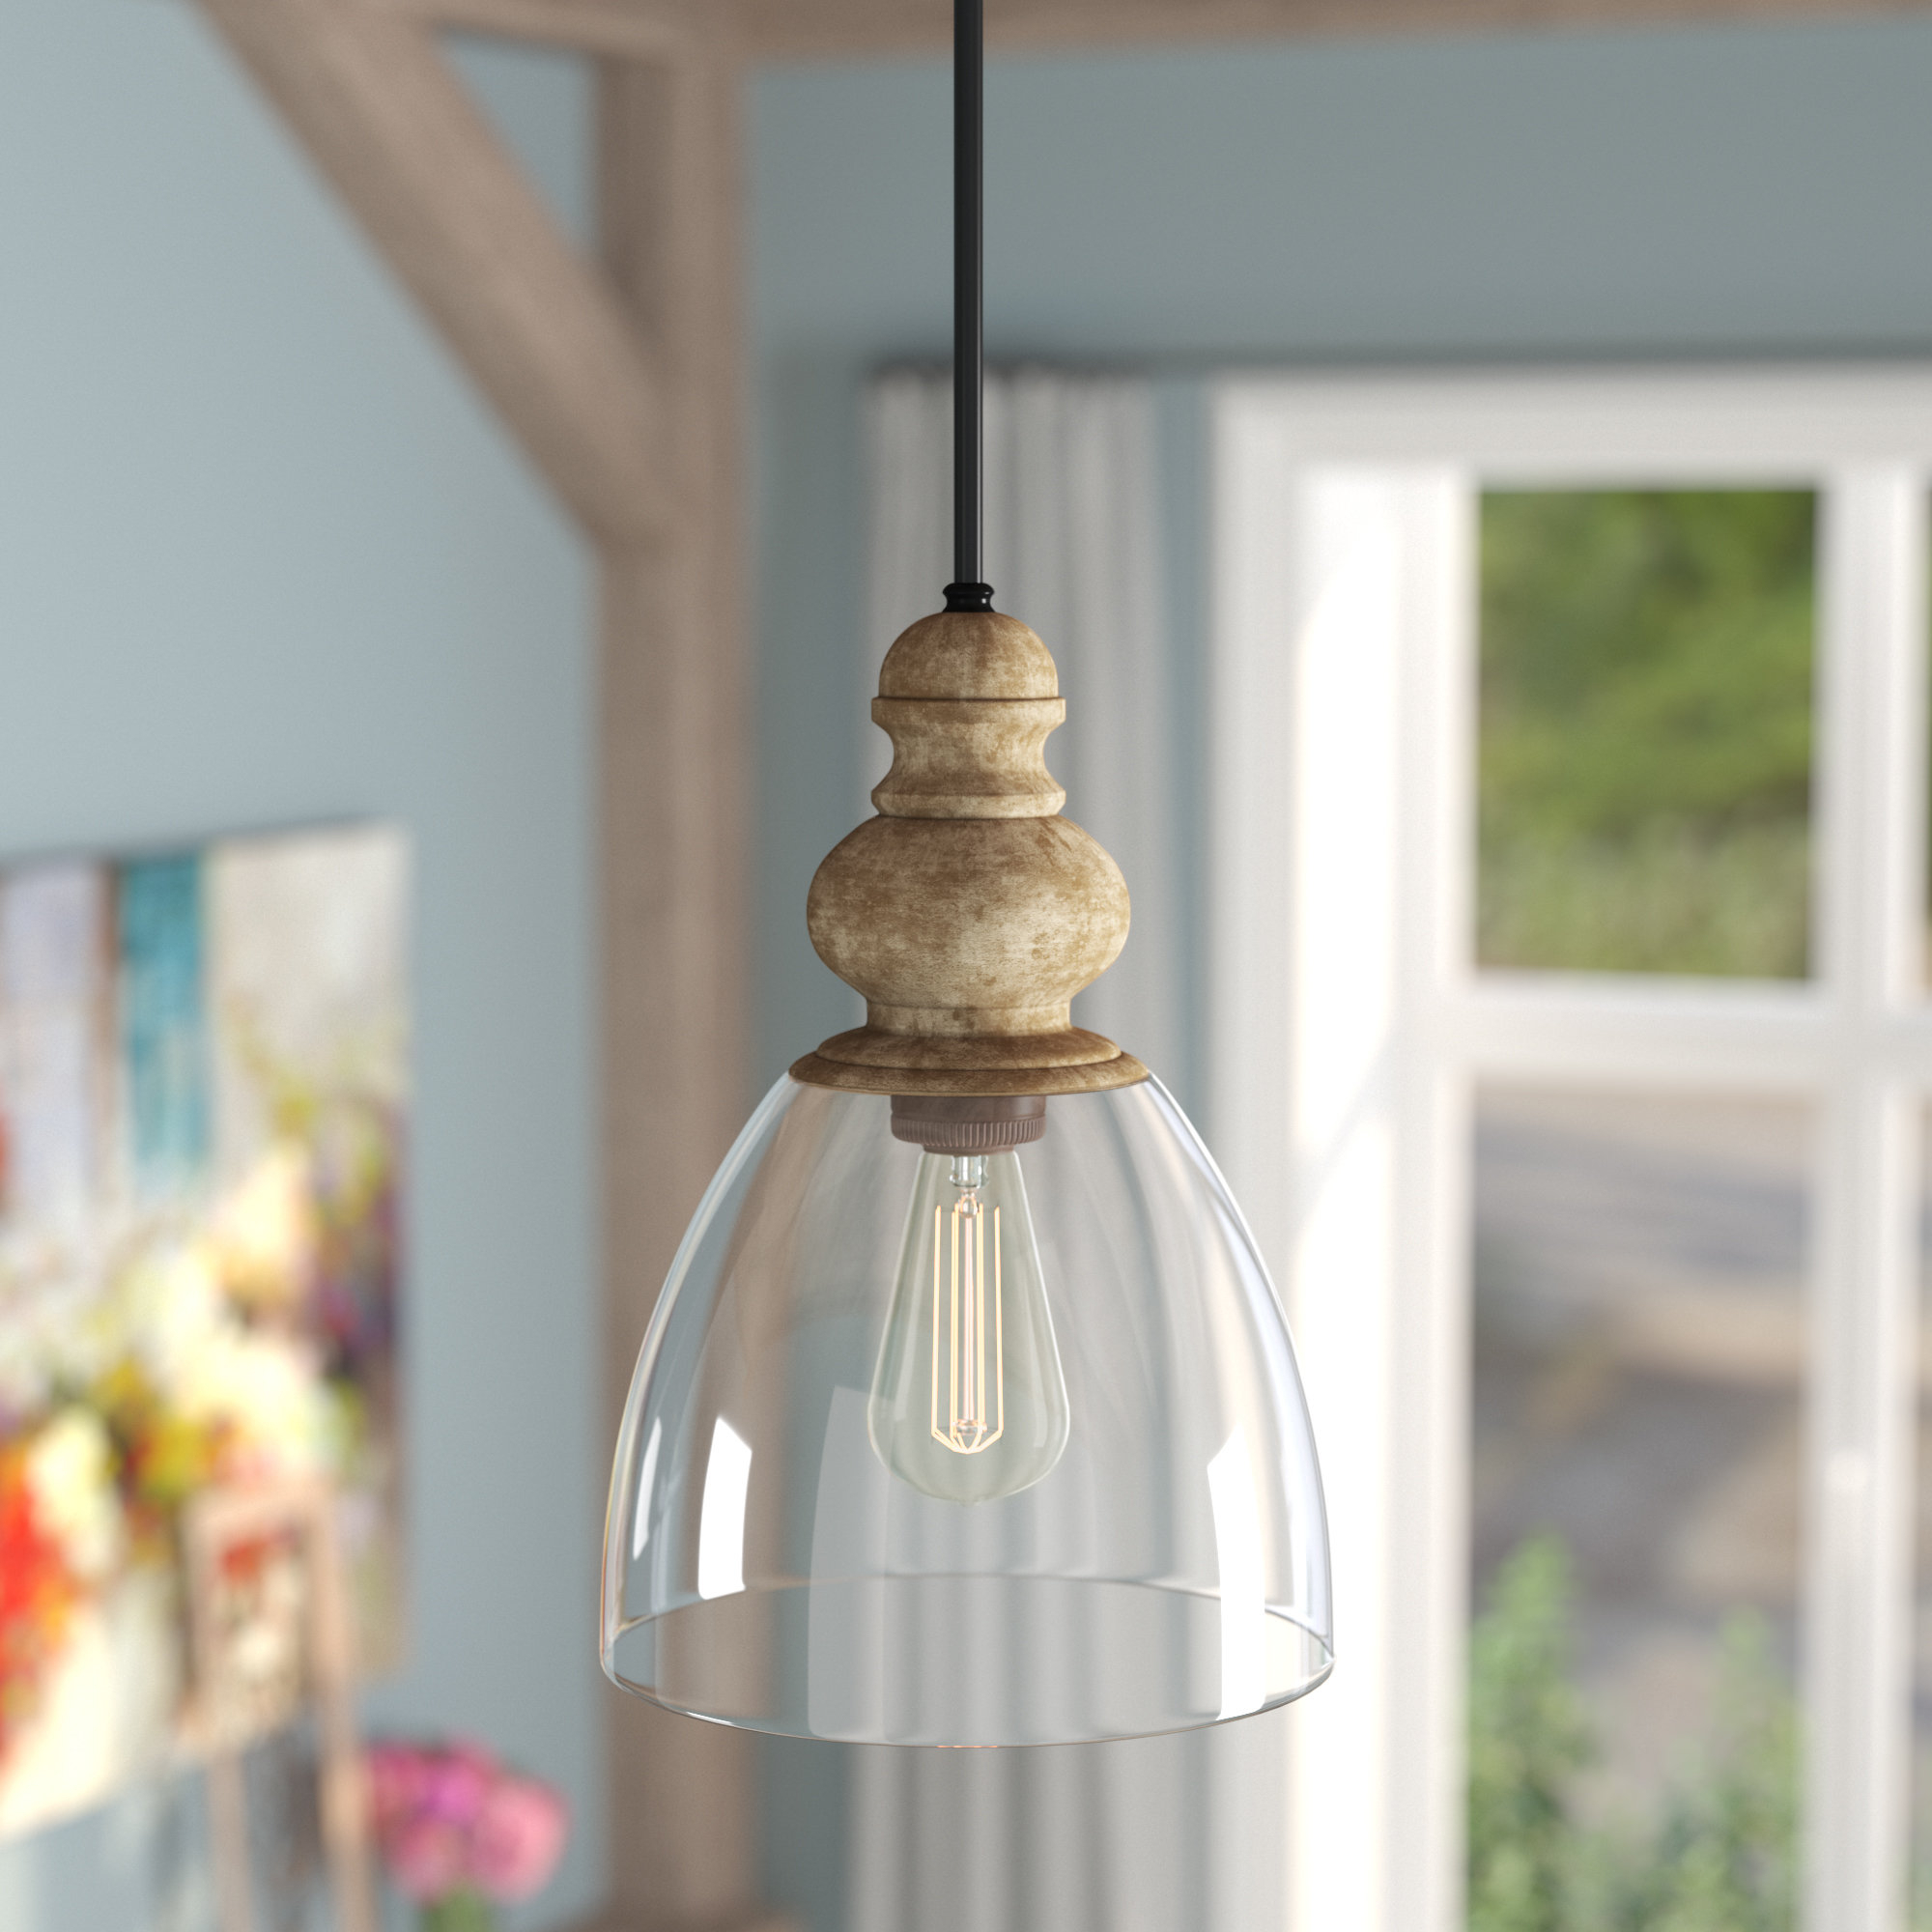 Laurel Foundry Modern Farmhouse Lemelle 1 Light Single Bell Within Famous Sargent 1 Light Single Bell Pendants (View 10 of 25)